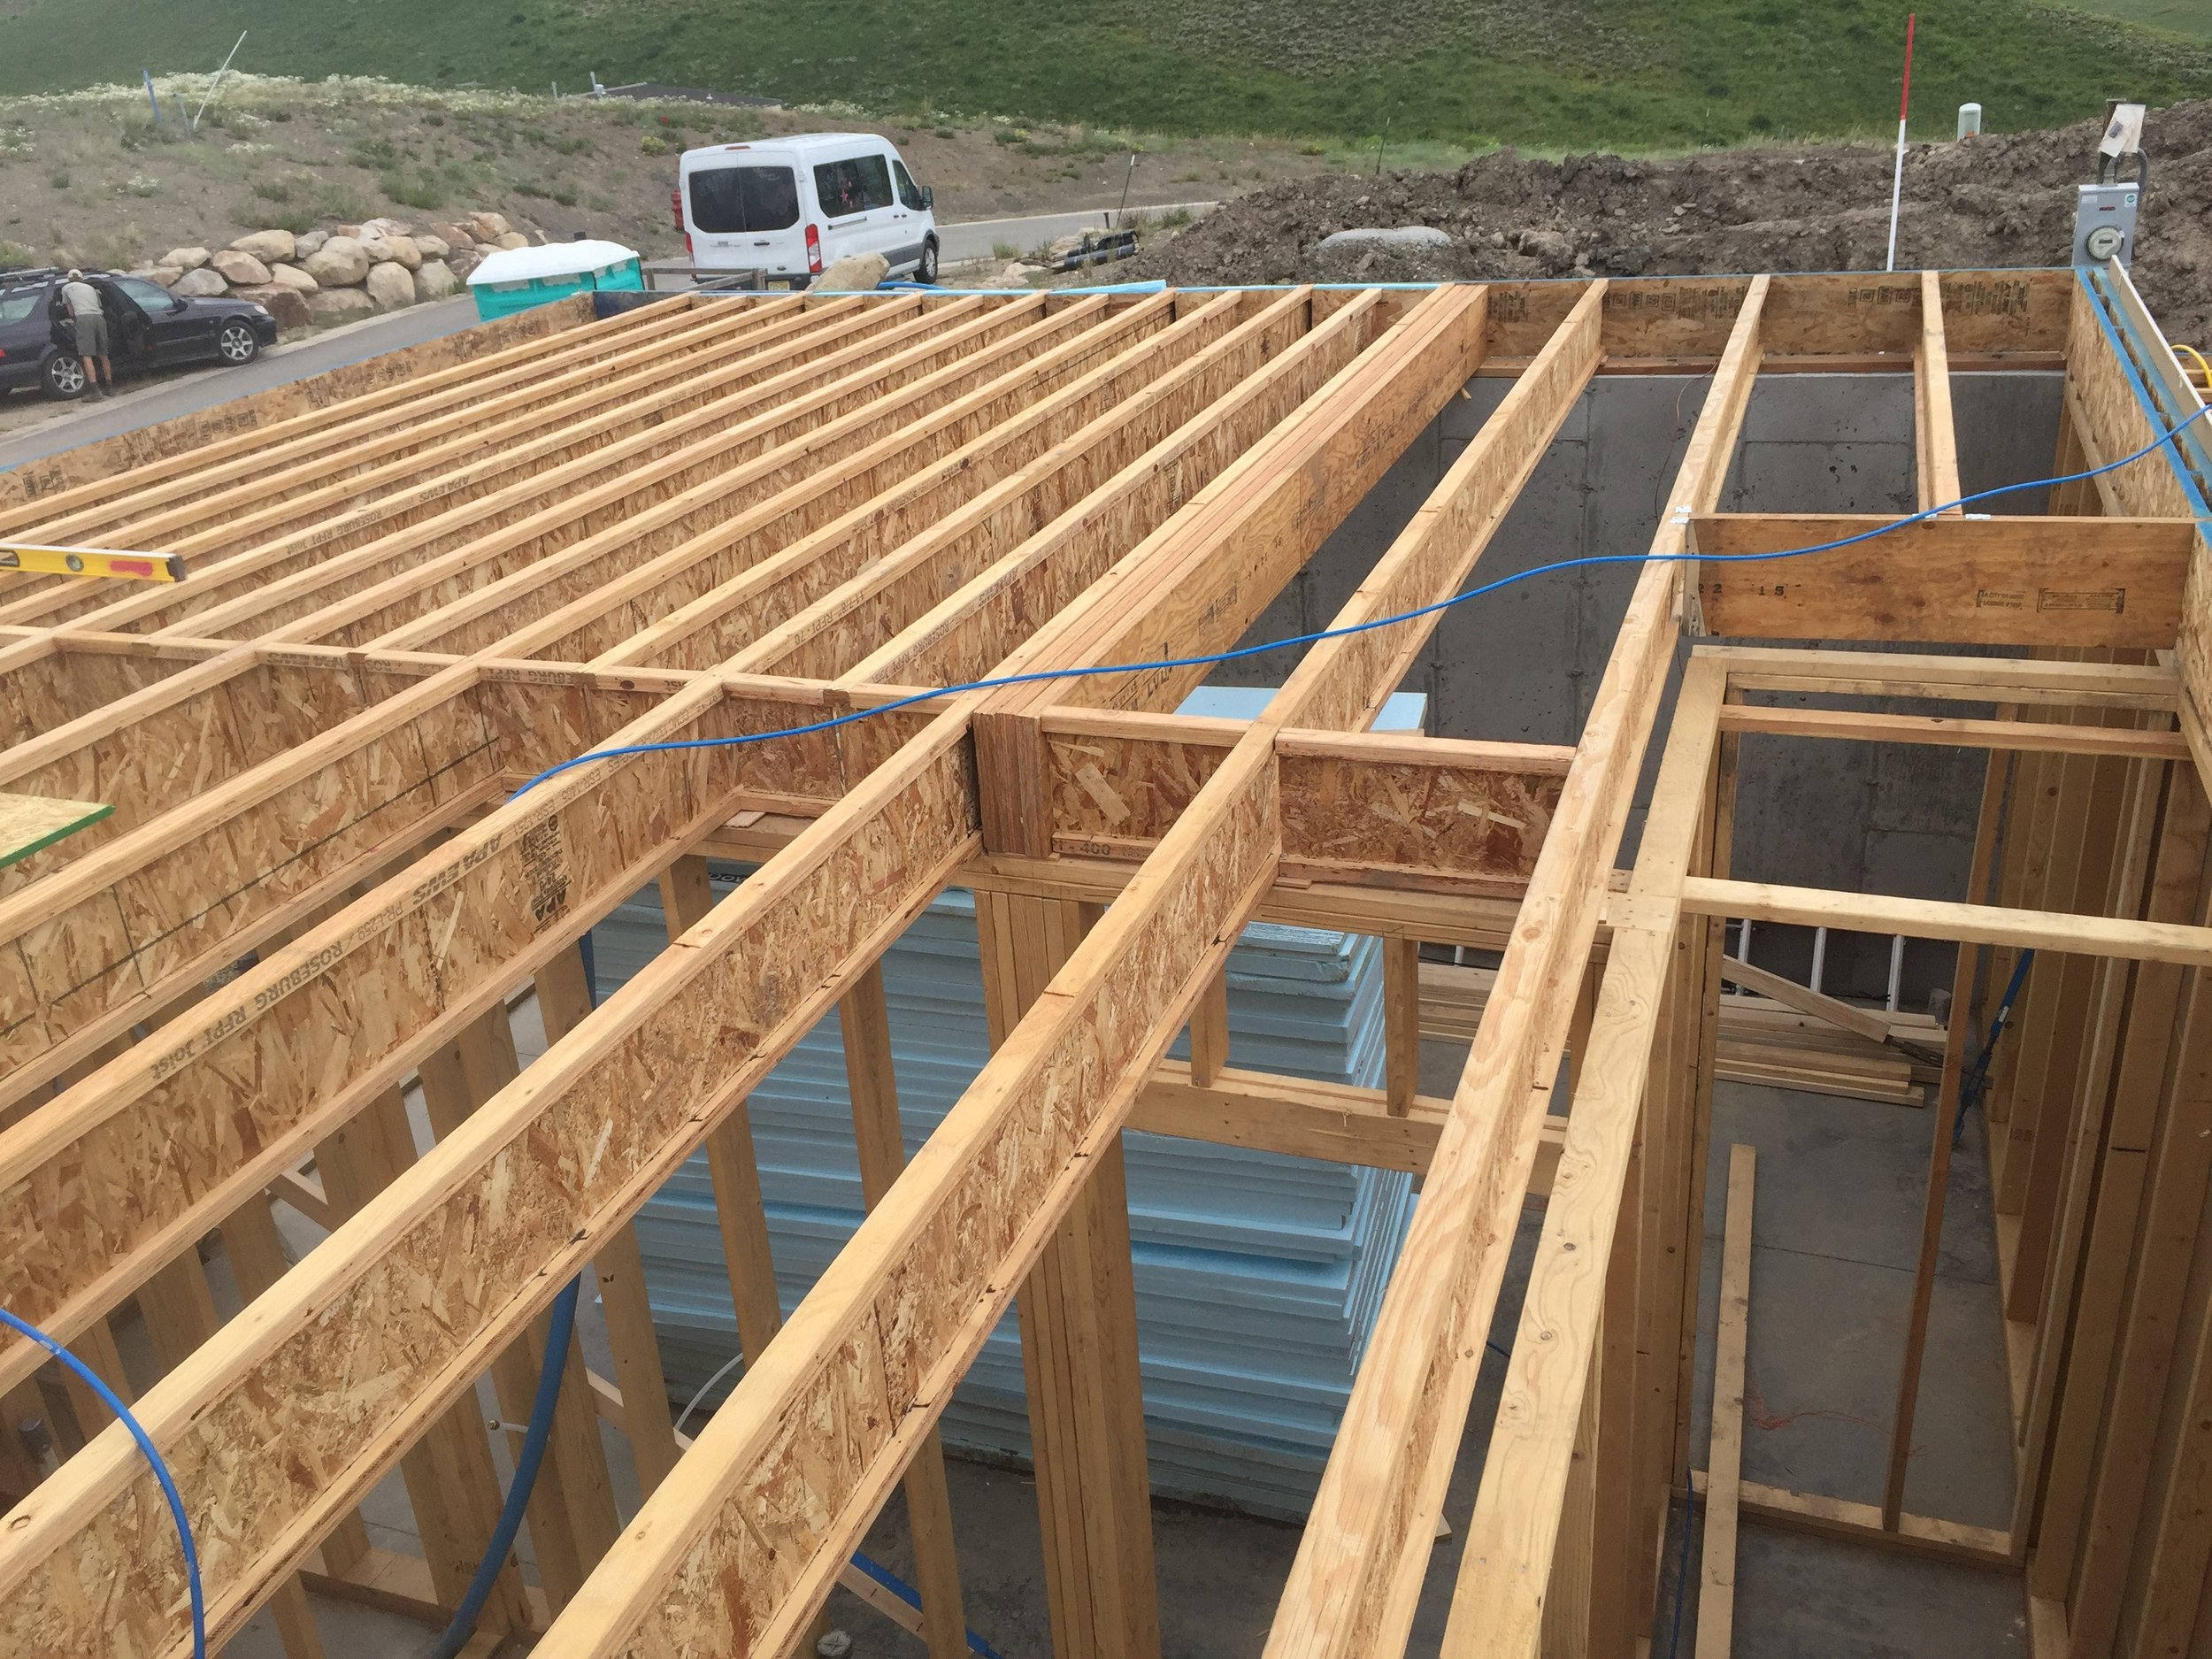 These are the eye joists, you can see at the very end of them they are connected to the rim joist. Also note the blocking in between them.